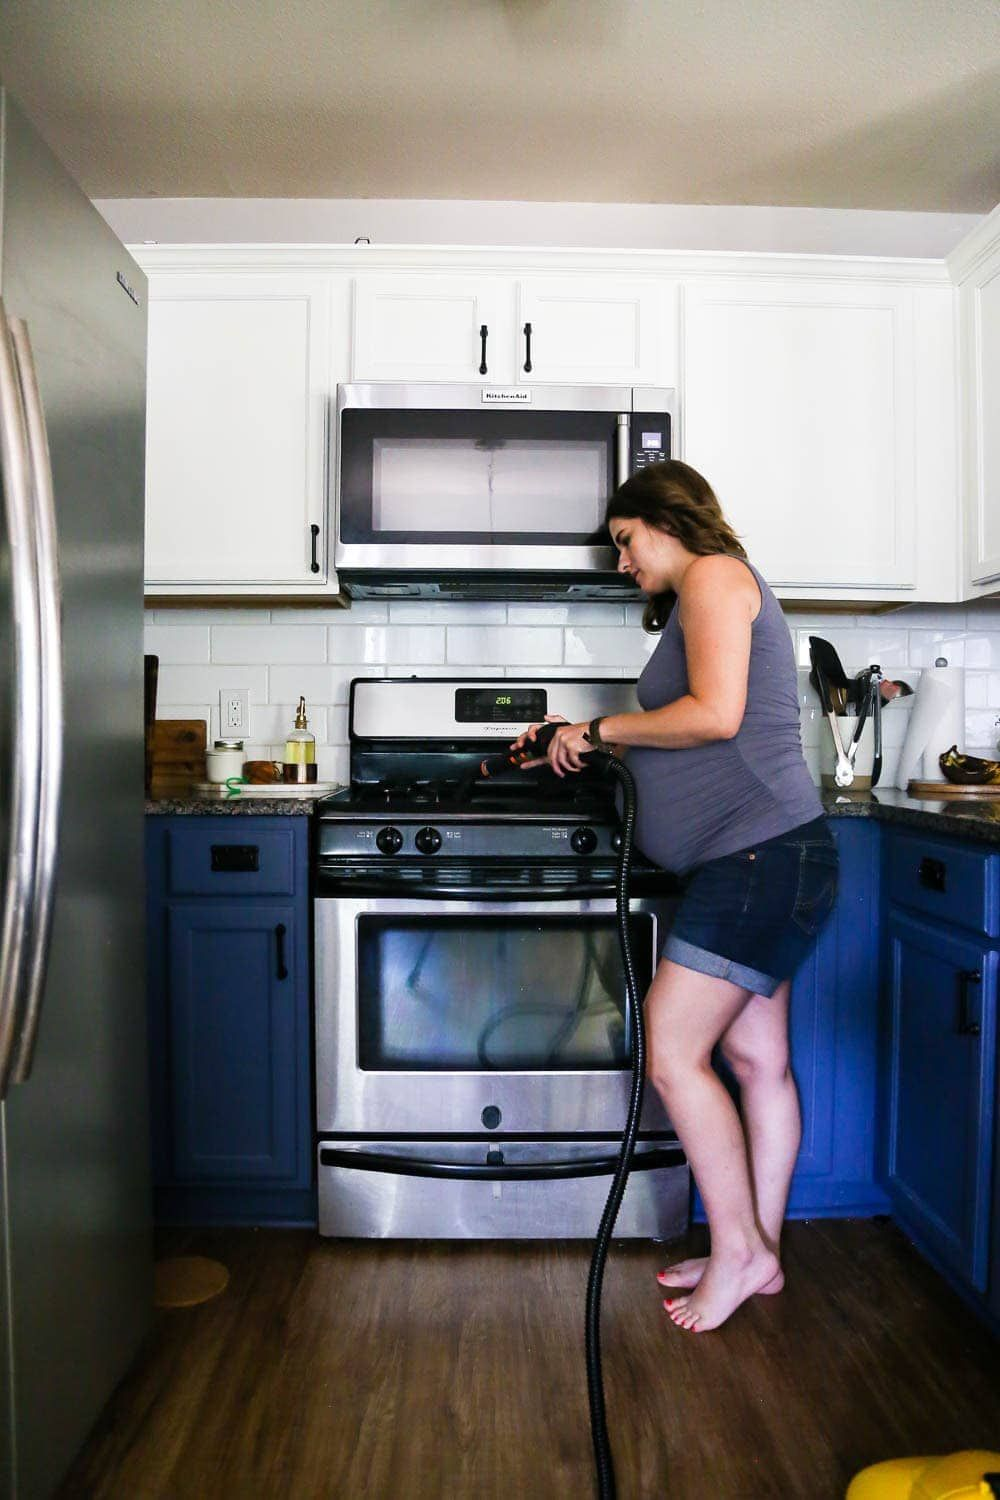 How To Use A Steamer 15 Genius Ways To Use Your Steam Cleaner Steam Cleaners House Cleaning Tips Steamer